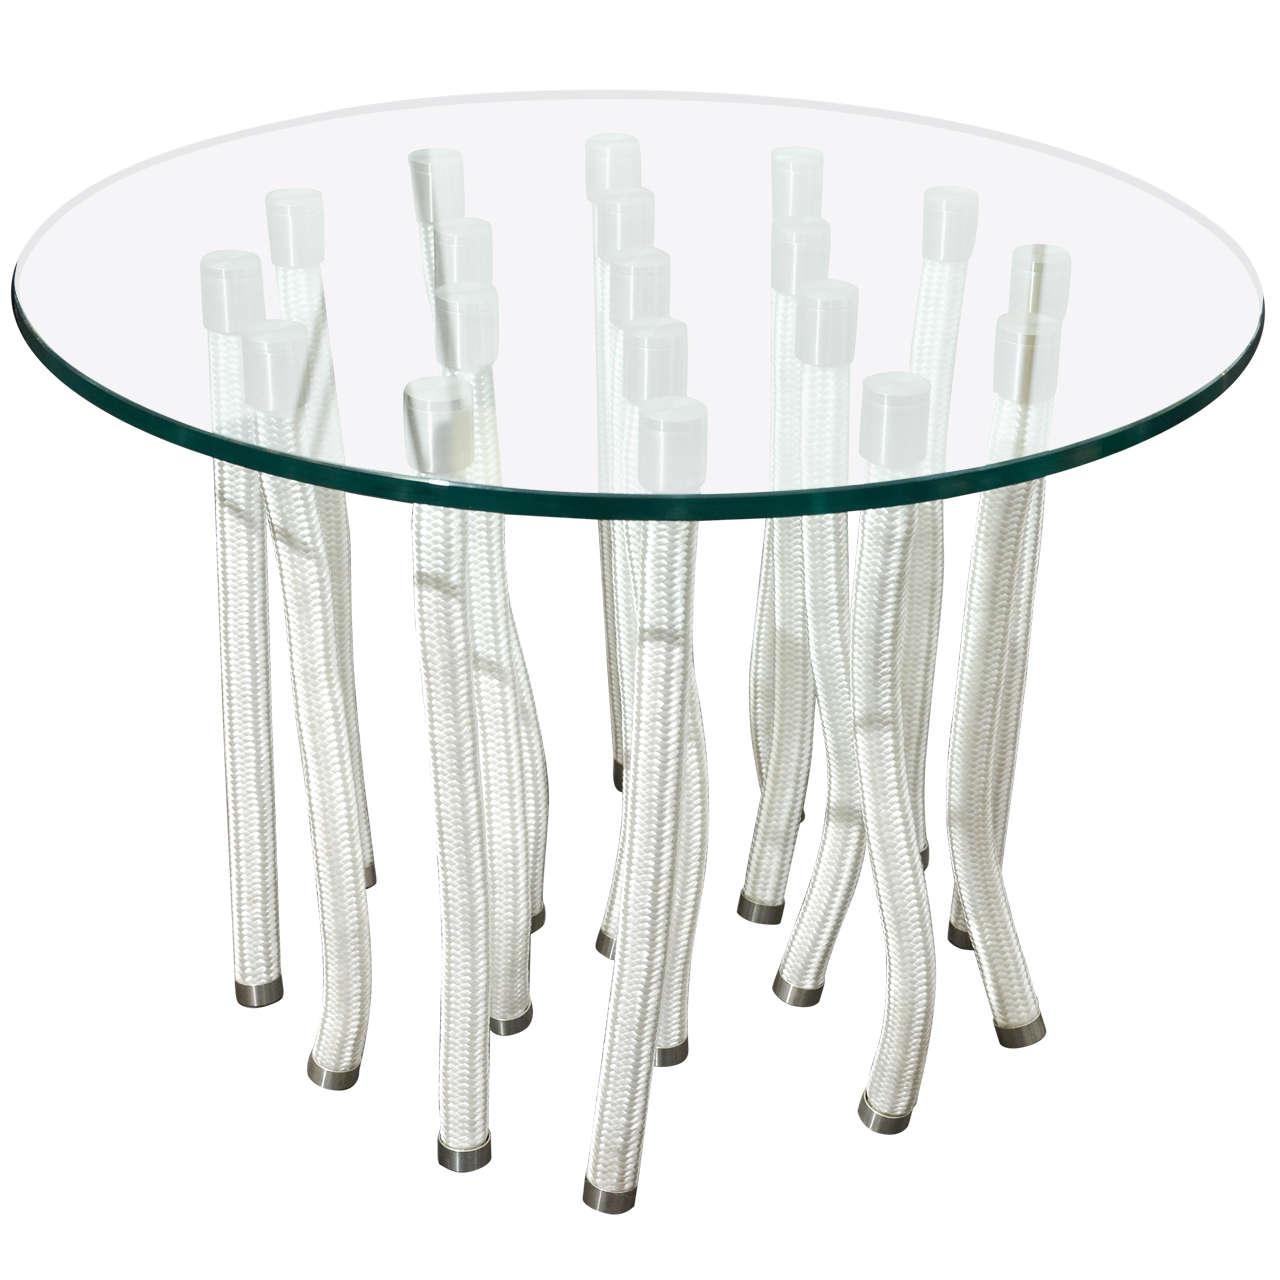 Round glass coffee table by f novembre for sale at 1stdibs for Round glass coffee tables for sale